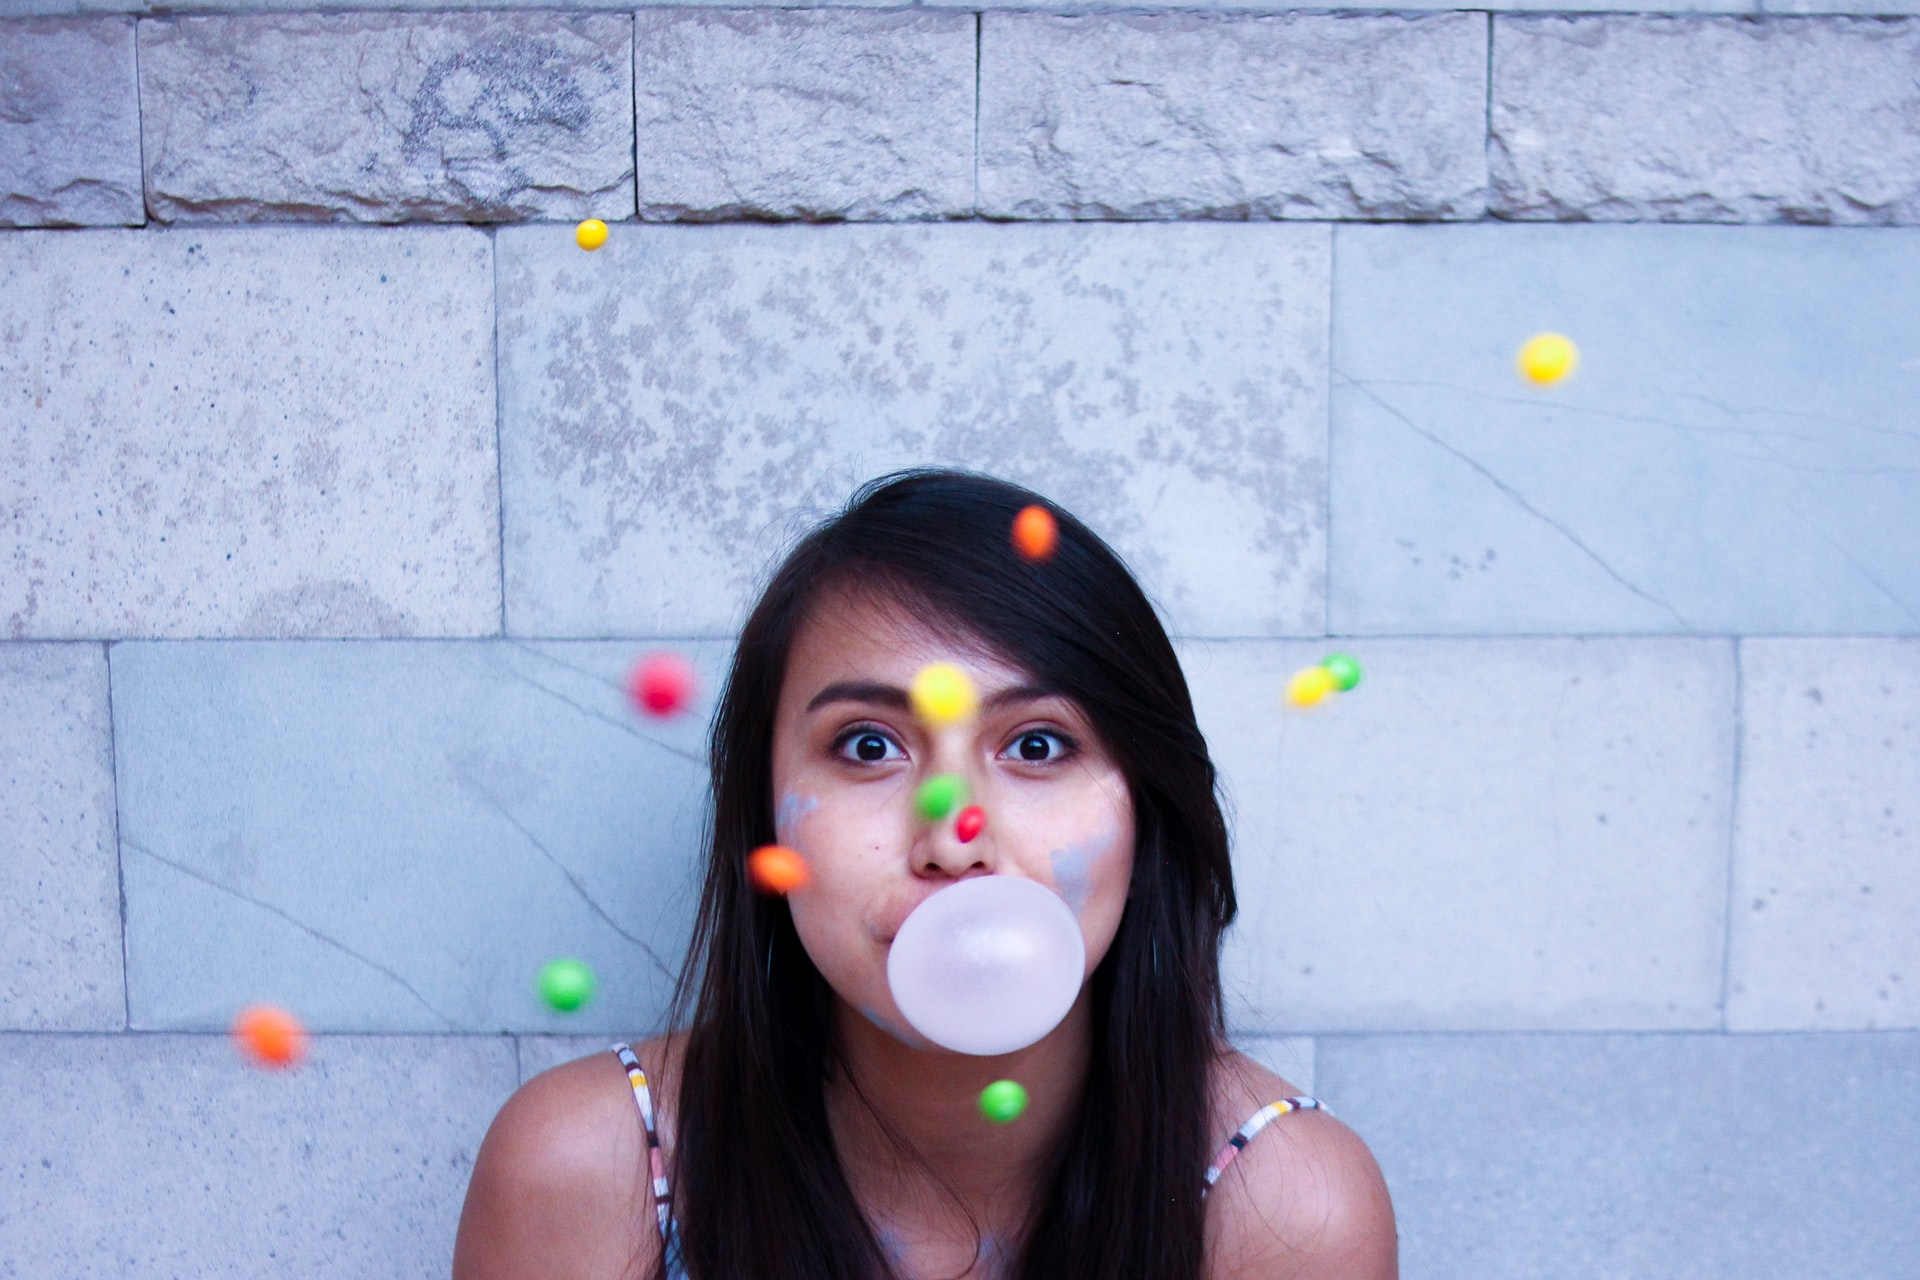 Does chewing gum make you fat